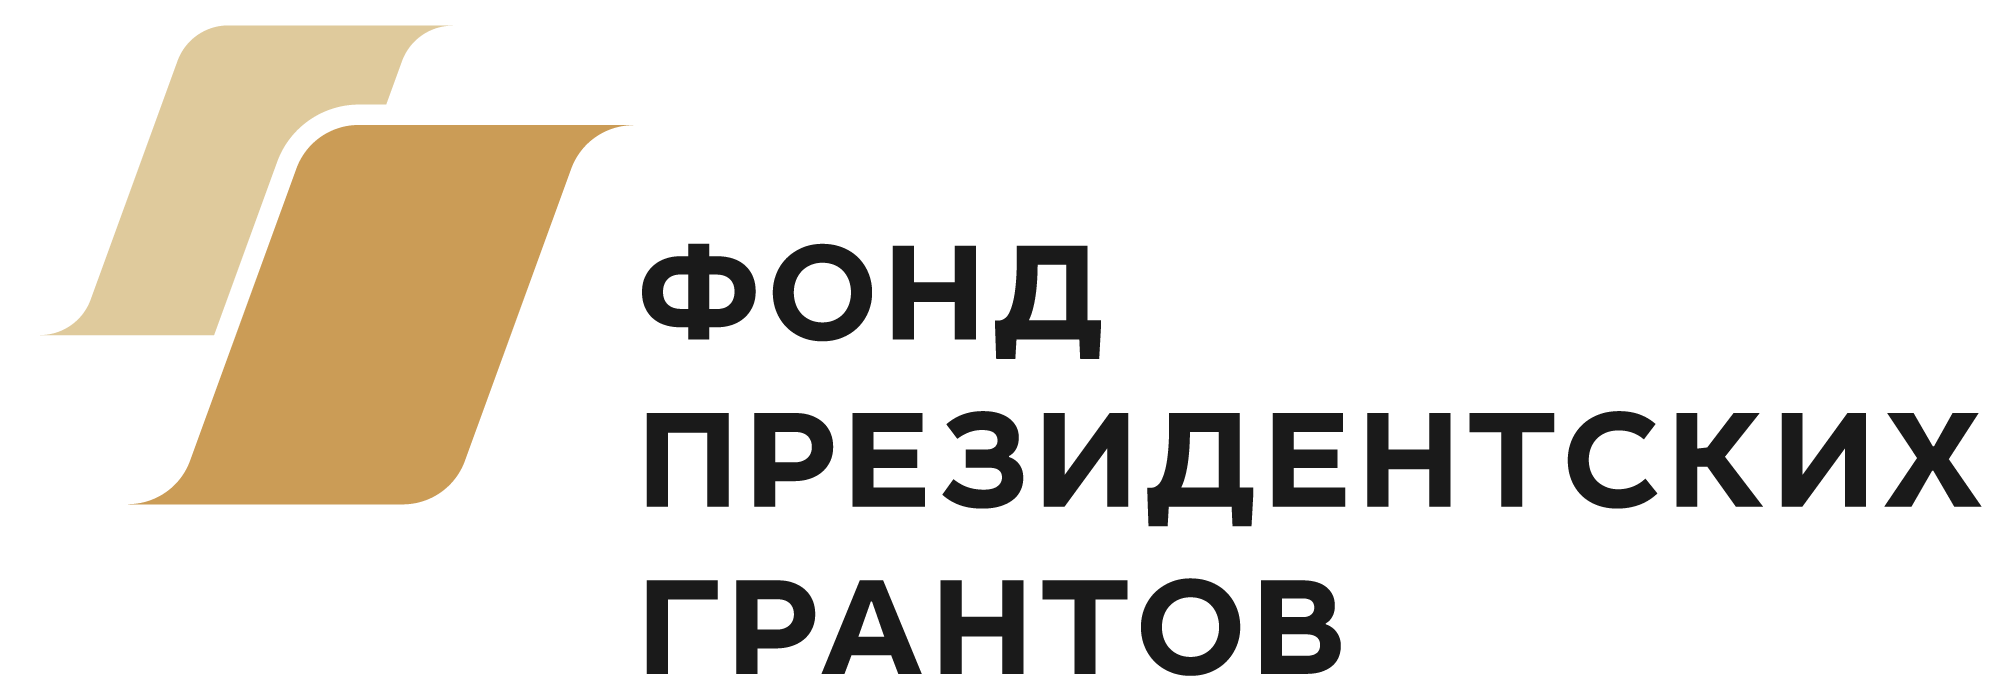 http://sbirb.combatsd.ru/images/upload/Logotype_fpg.png